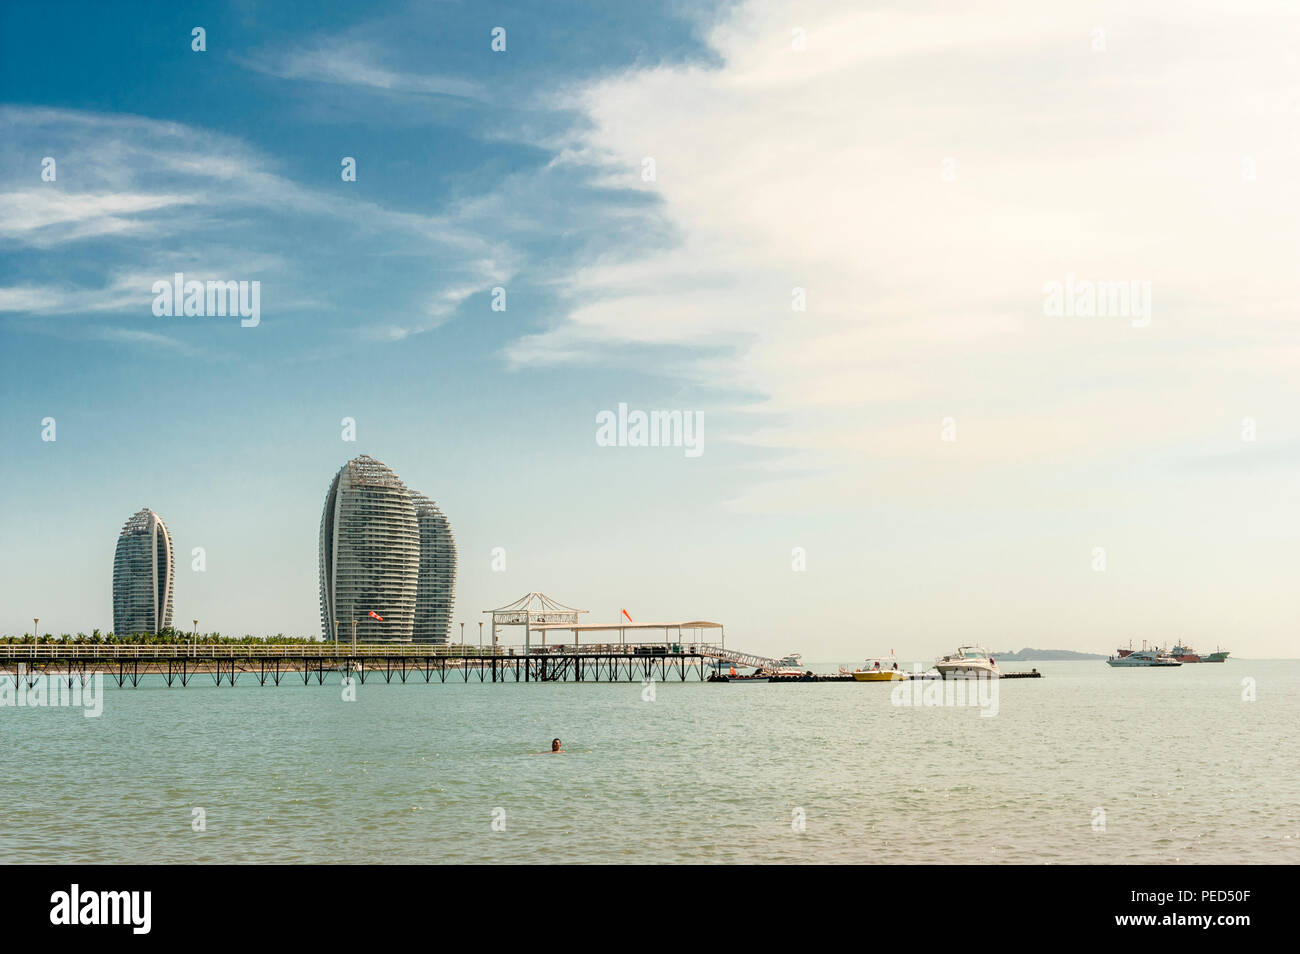 The innovative architecture of Phoenix Island seen from Sanya's city beach - Stock Image